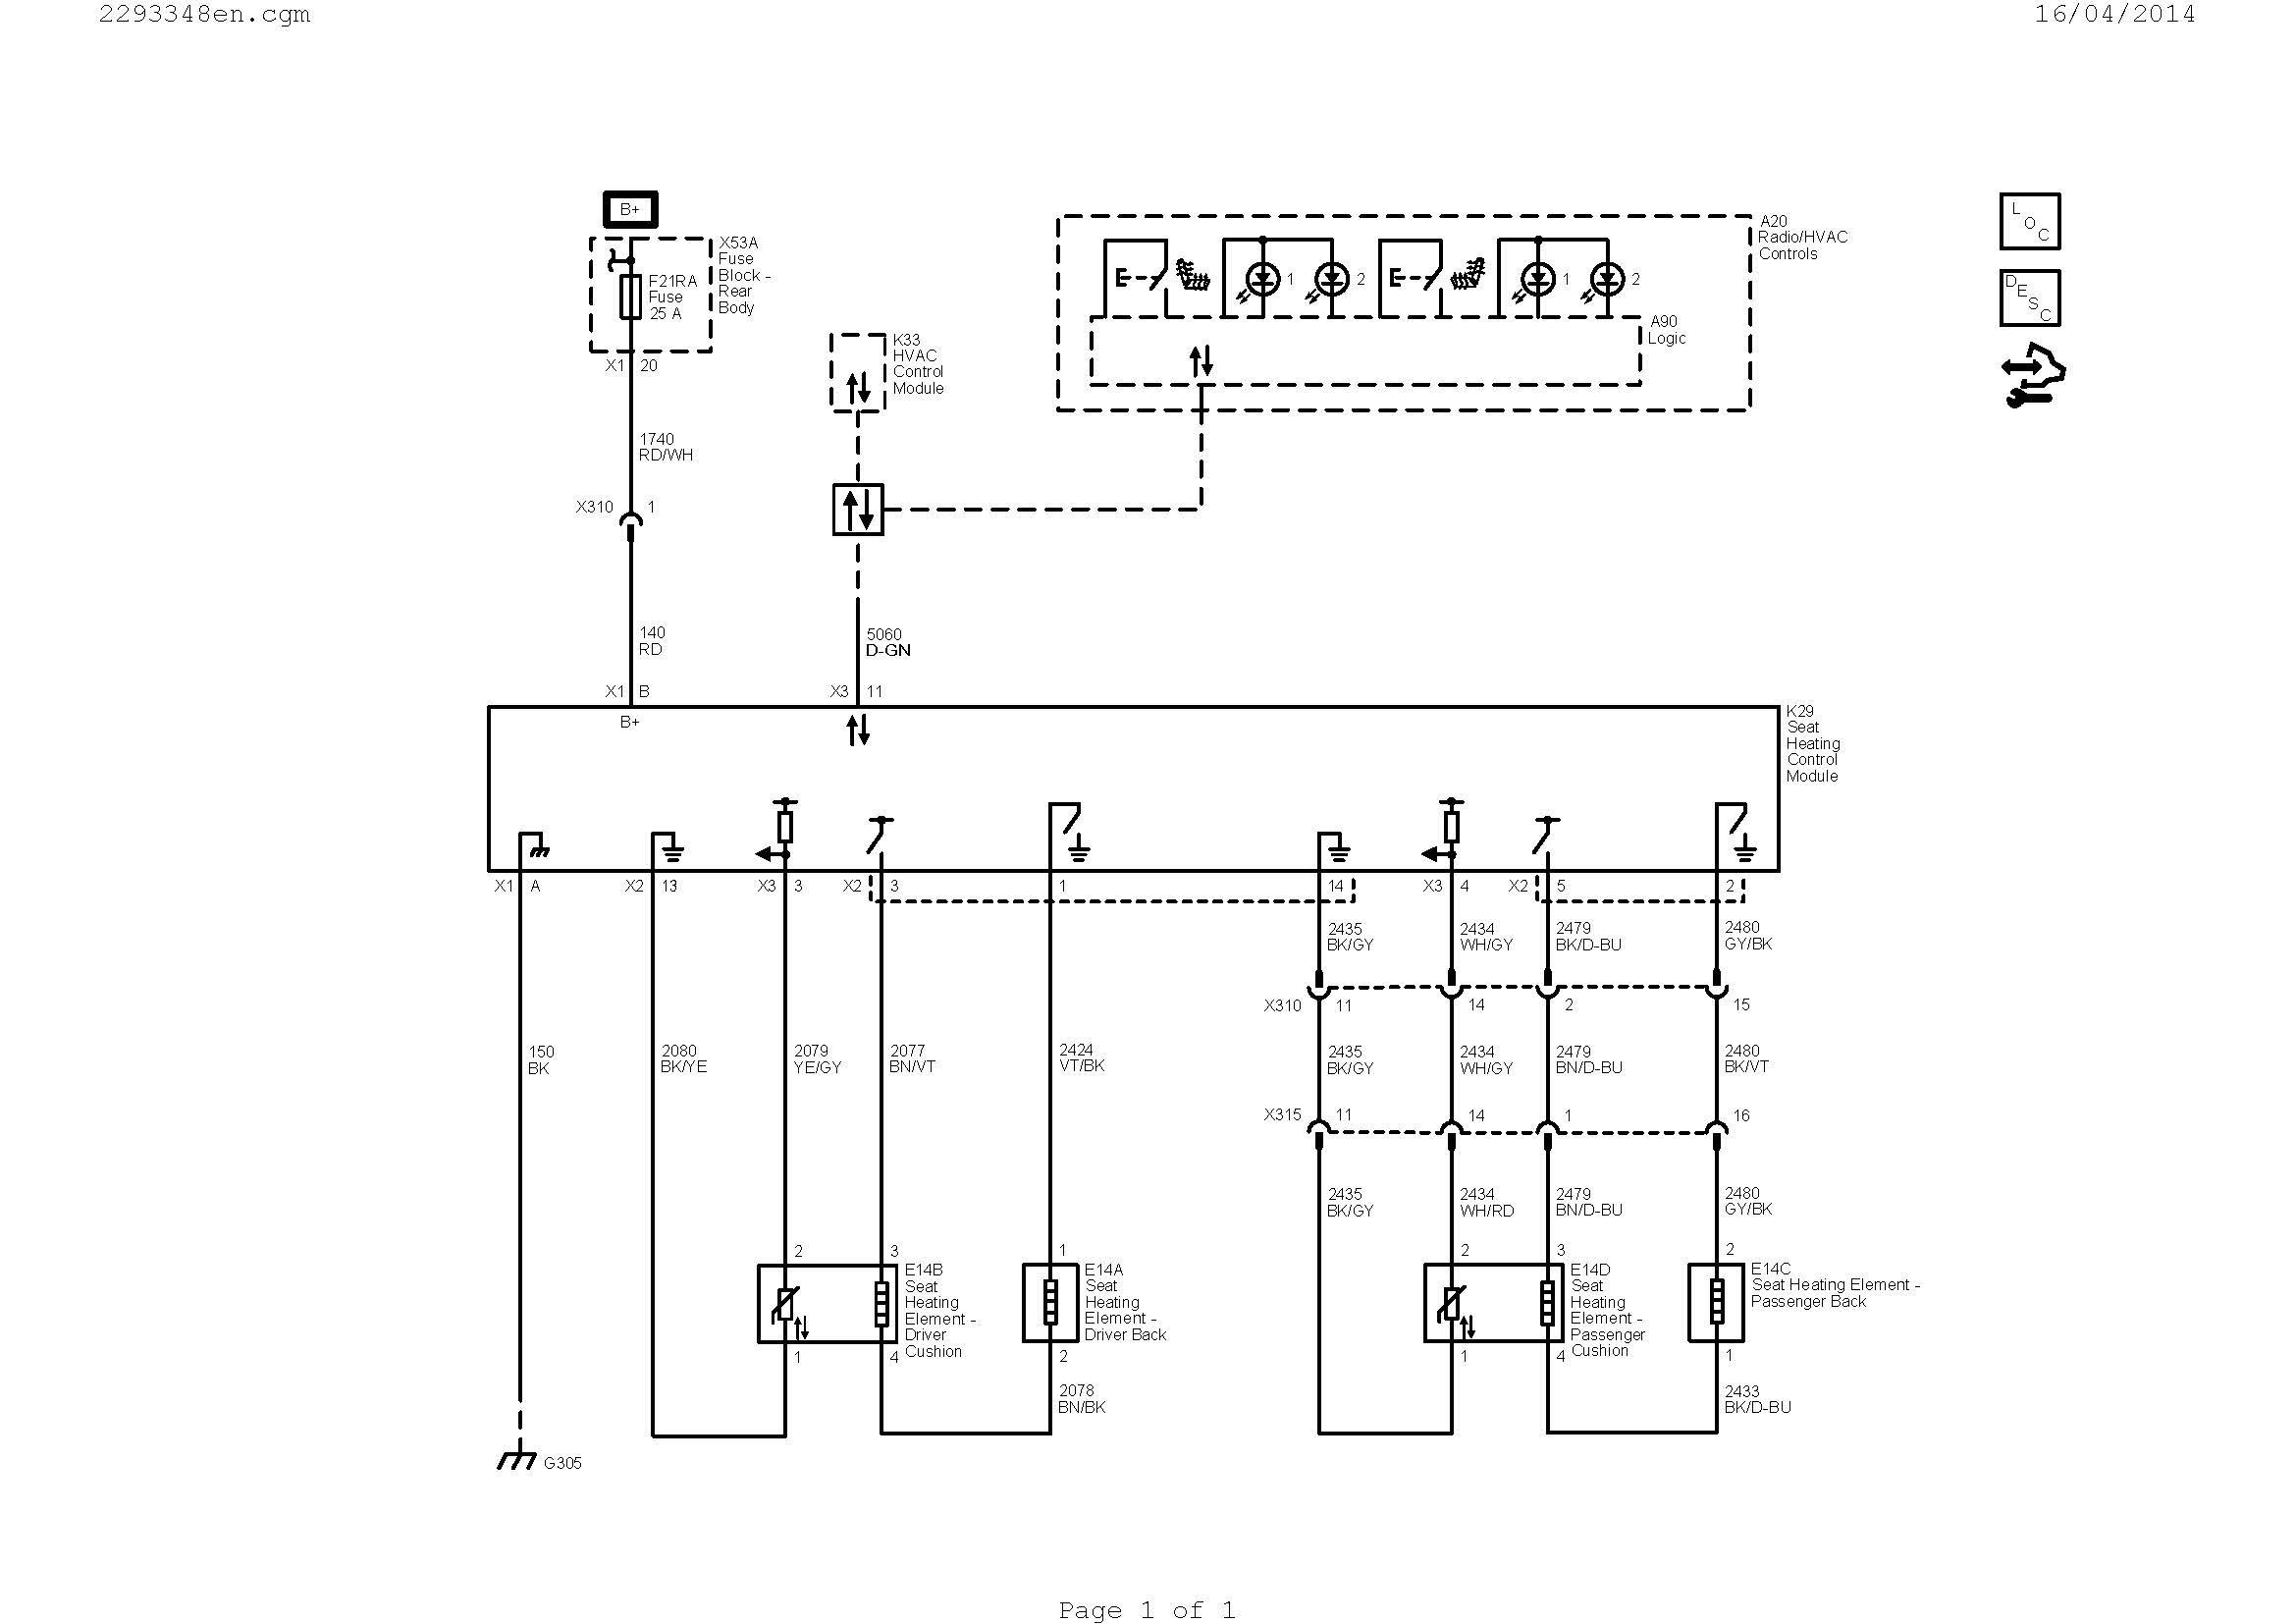 ac wiring diagram Collection-Wiring Diagram Car Valid Wiring Diagram Ac Valid Hvac Diagram Best Hvac Diagram 0d – Wire 13-t